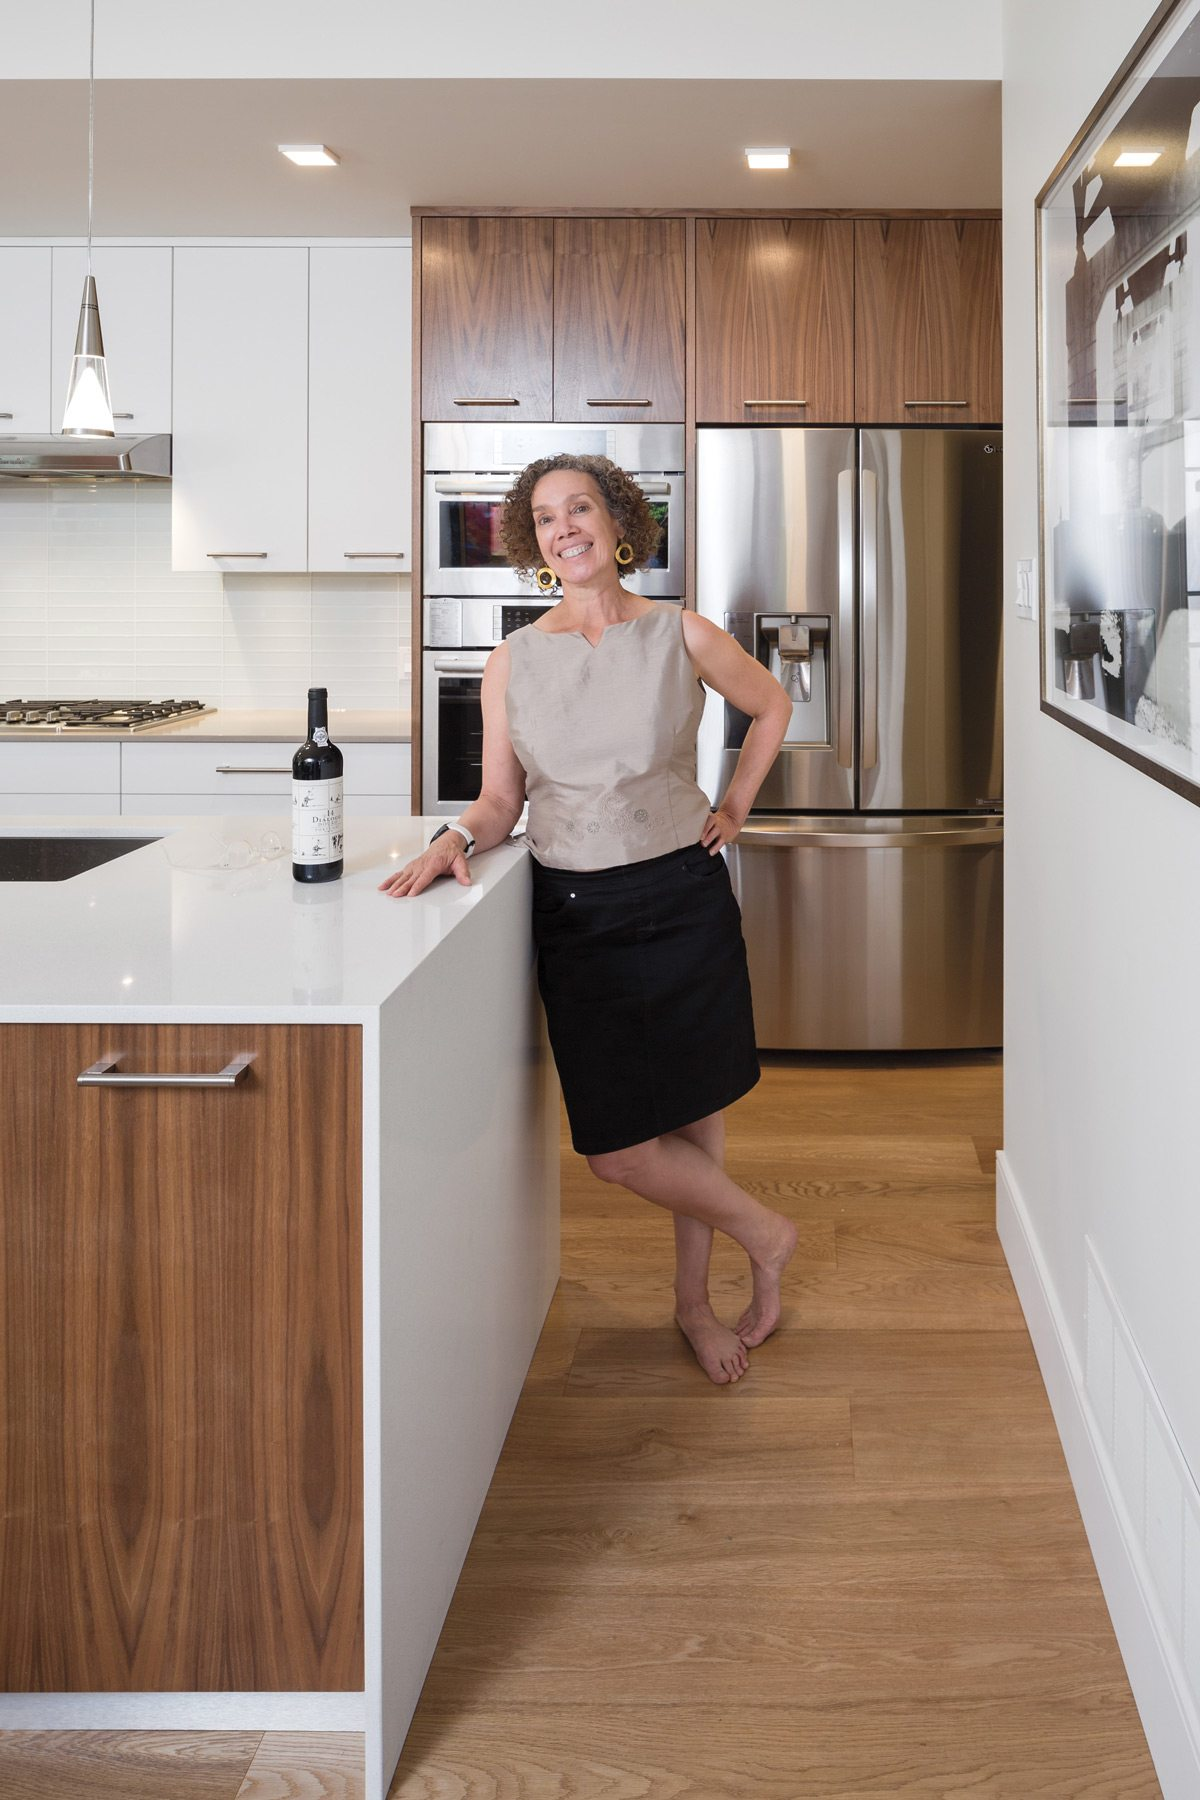 Ottawa architect Linda Chapman designed the four-unit condo, which upholds the highest standards of green building and offers a vision for downsizing with community in mind. Photography by Justin Van Leeuwen